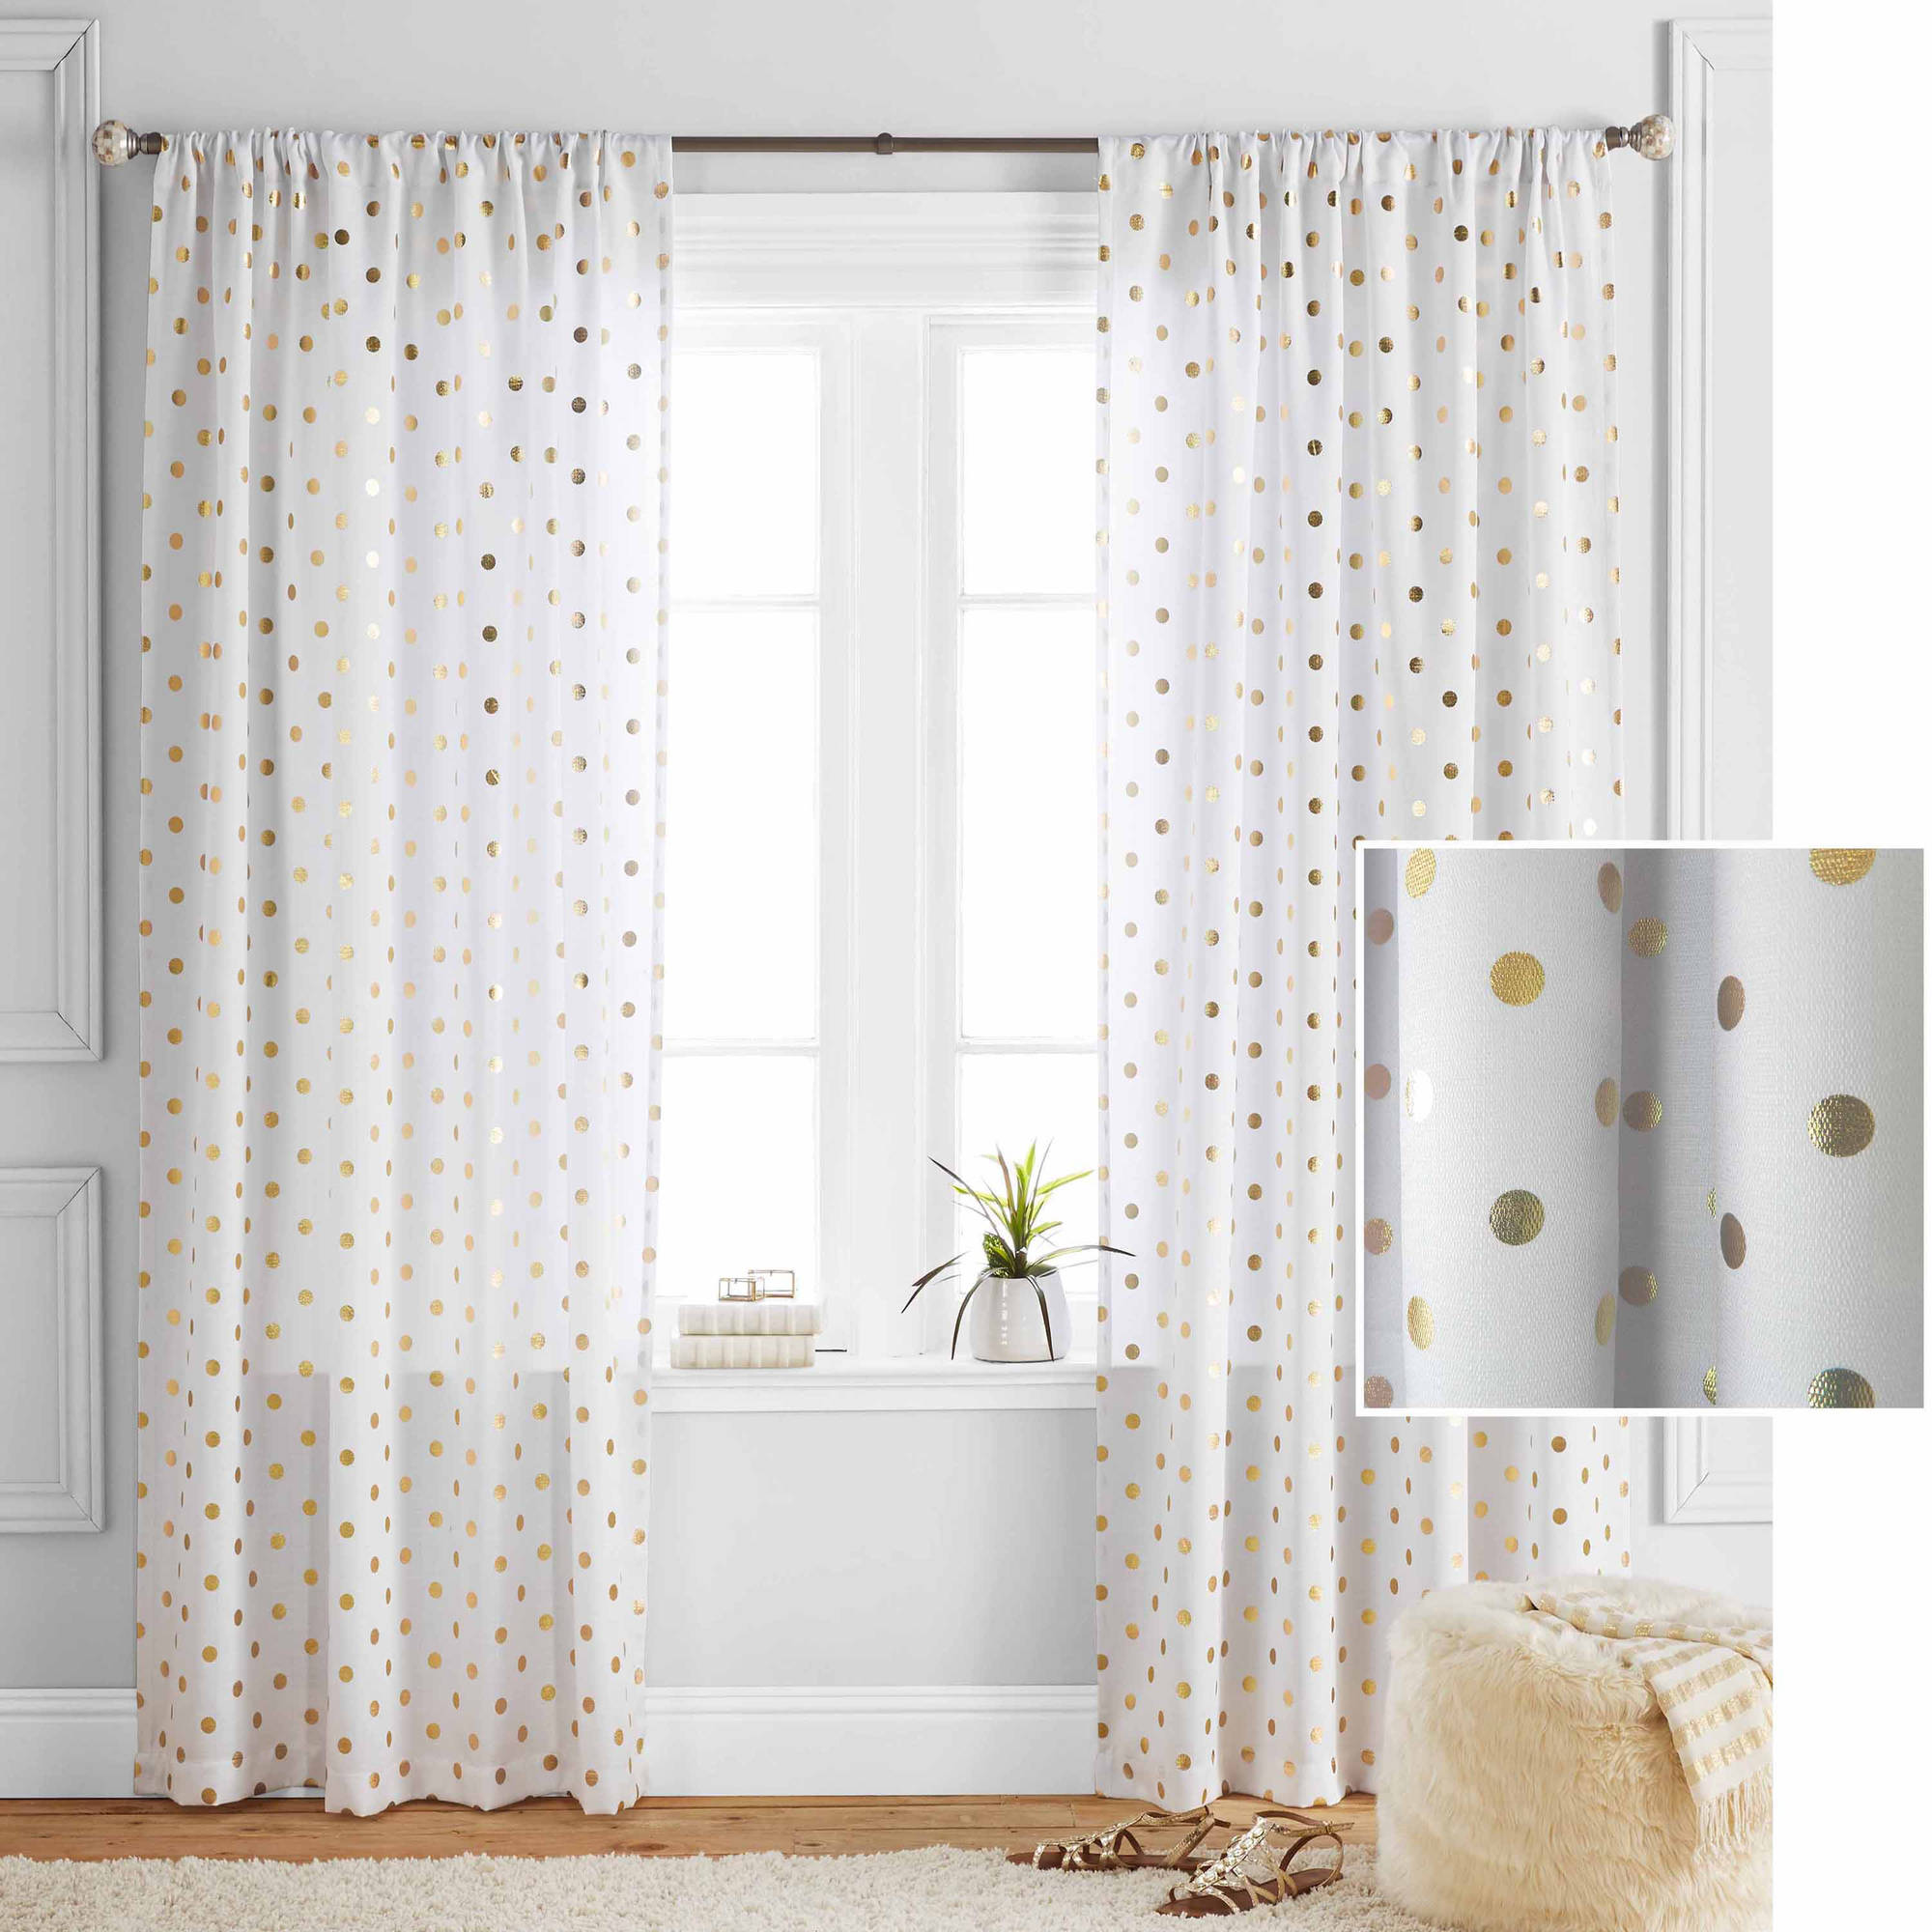 Better Homes and Gardens Polka Dots Panel